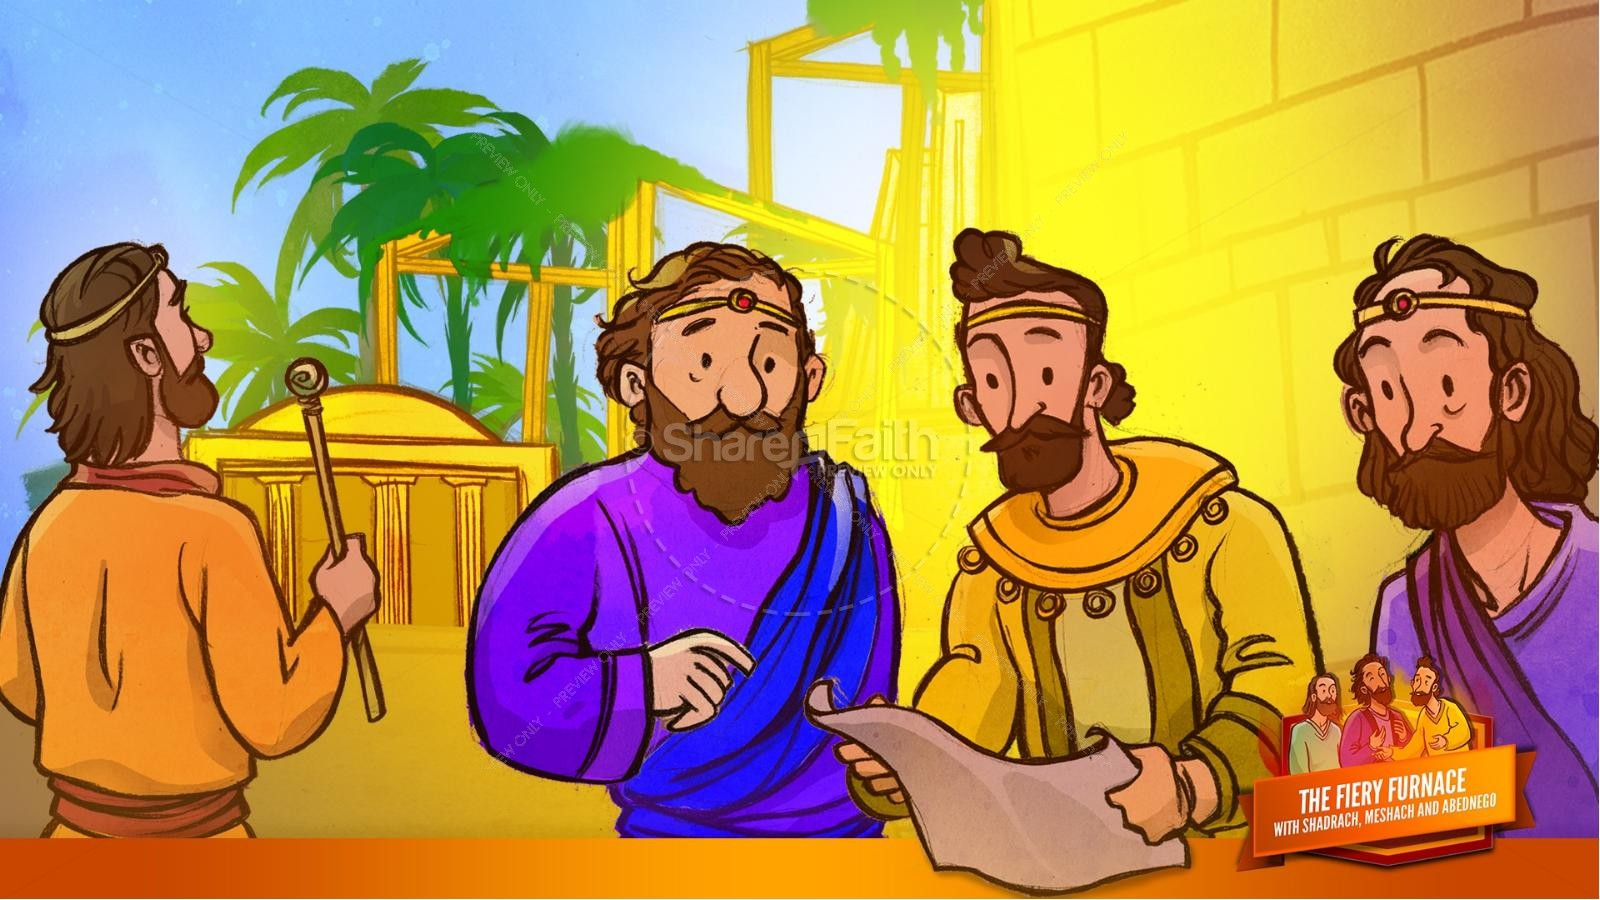 The Fiery Furnace with Shadrach, Meshach and Abednego Kids Bible Story | slide 19